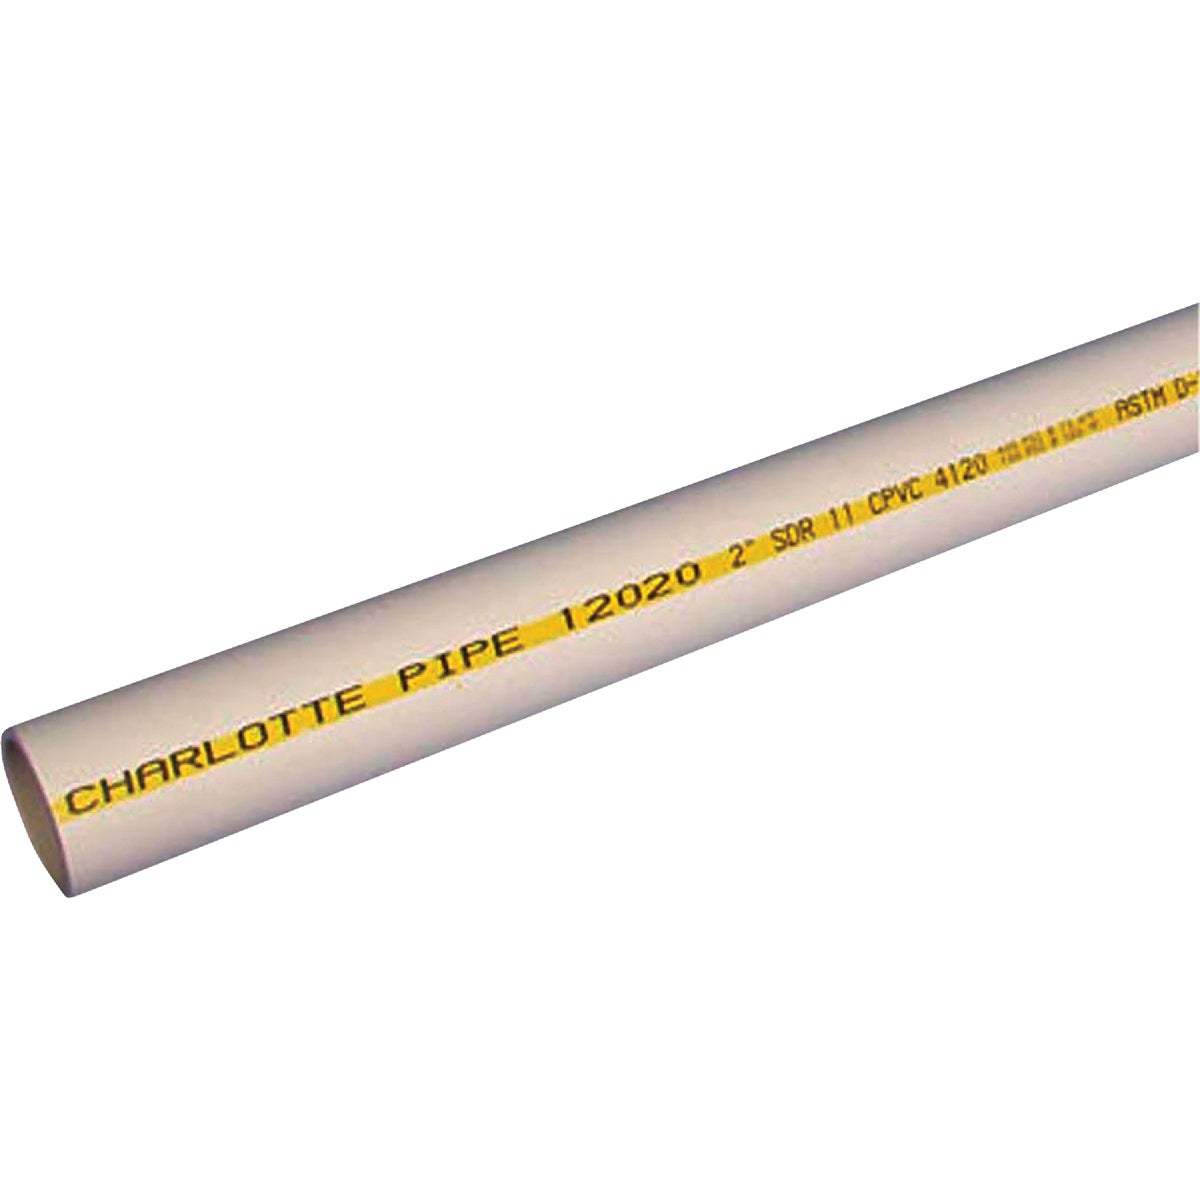 """1/2""""X10' CPVC-FLOWG PIPE - CTS120050600 by Charlotte Pipe"""